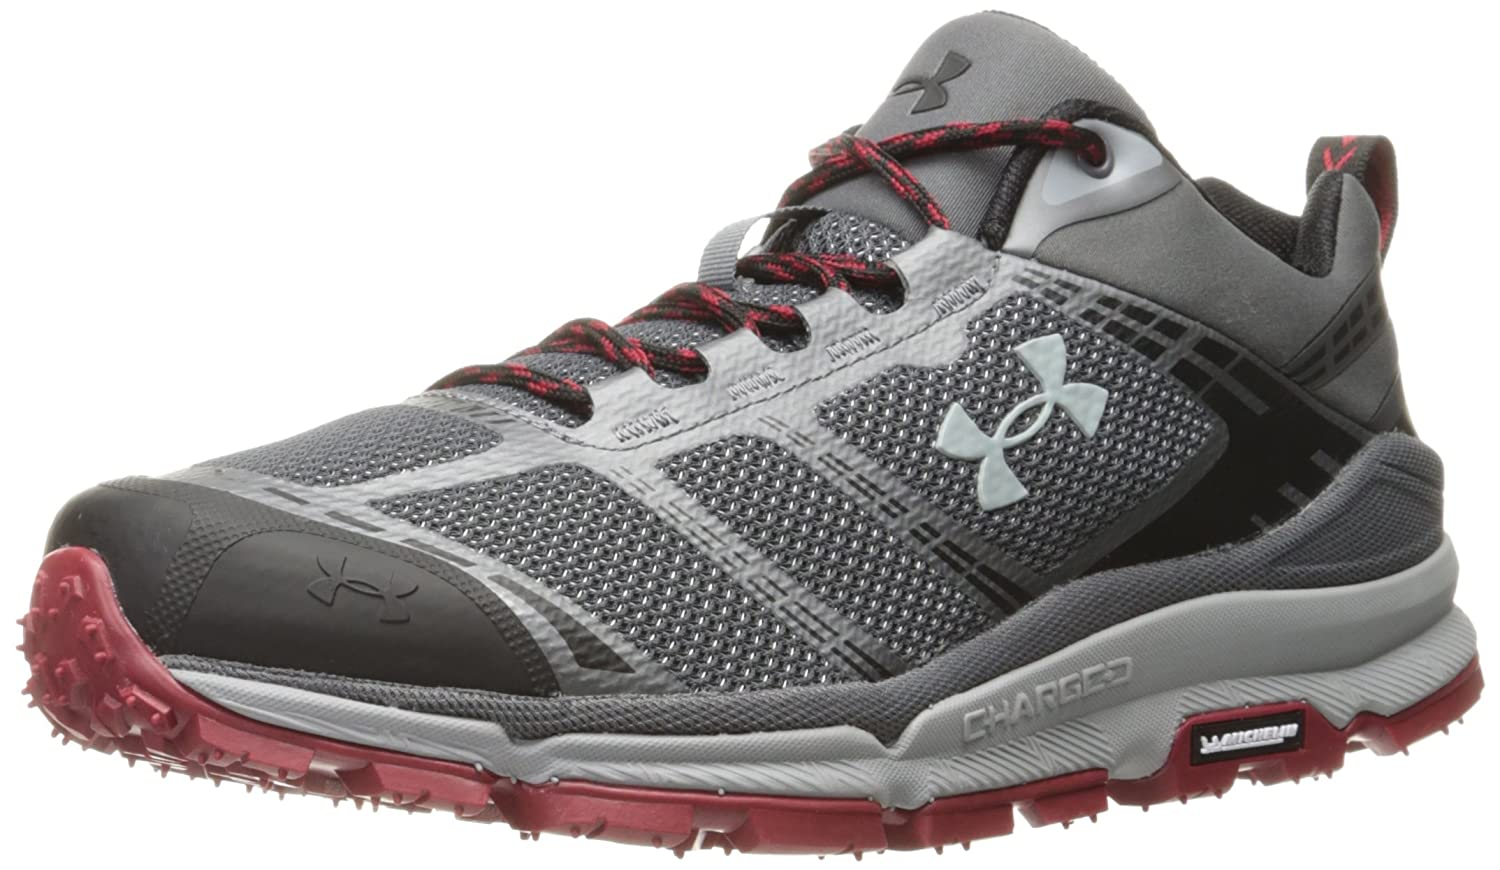 Under Armour Men's Verge Low Hiking Boot B01MR71FR3 Gray 11.5 M US|Graphite (040)/Overcast Gray B01MR71FR3 0eba37